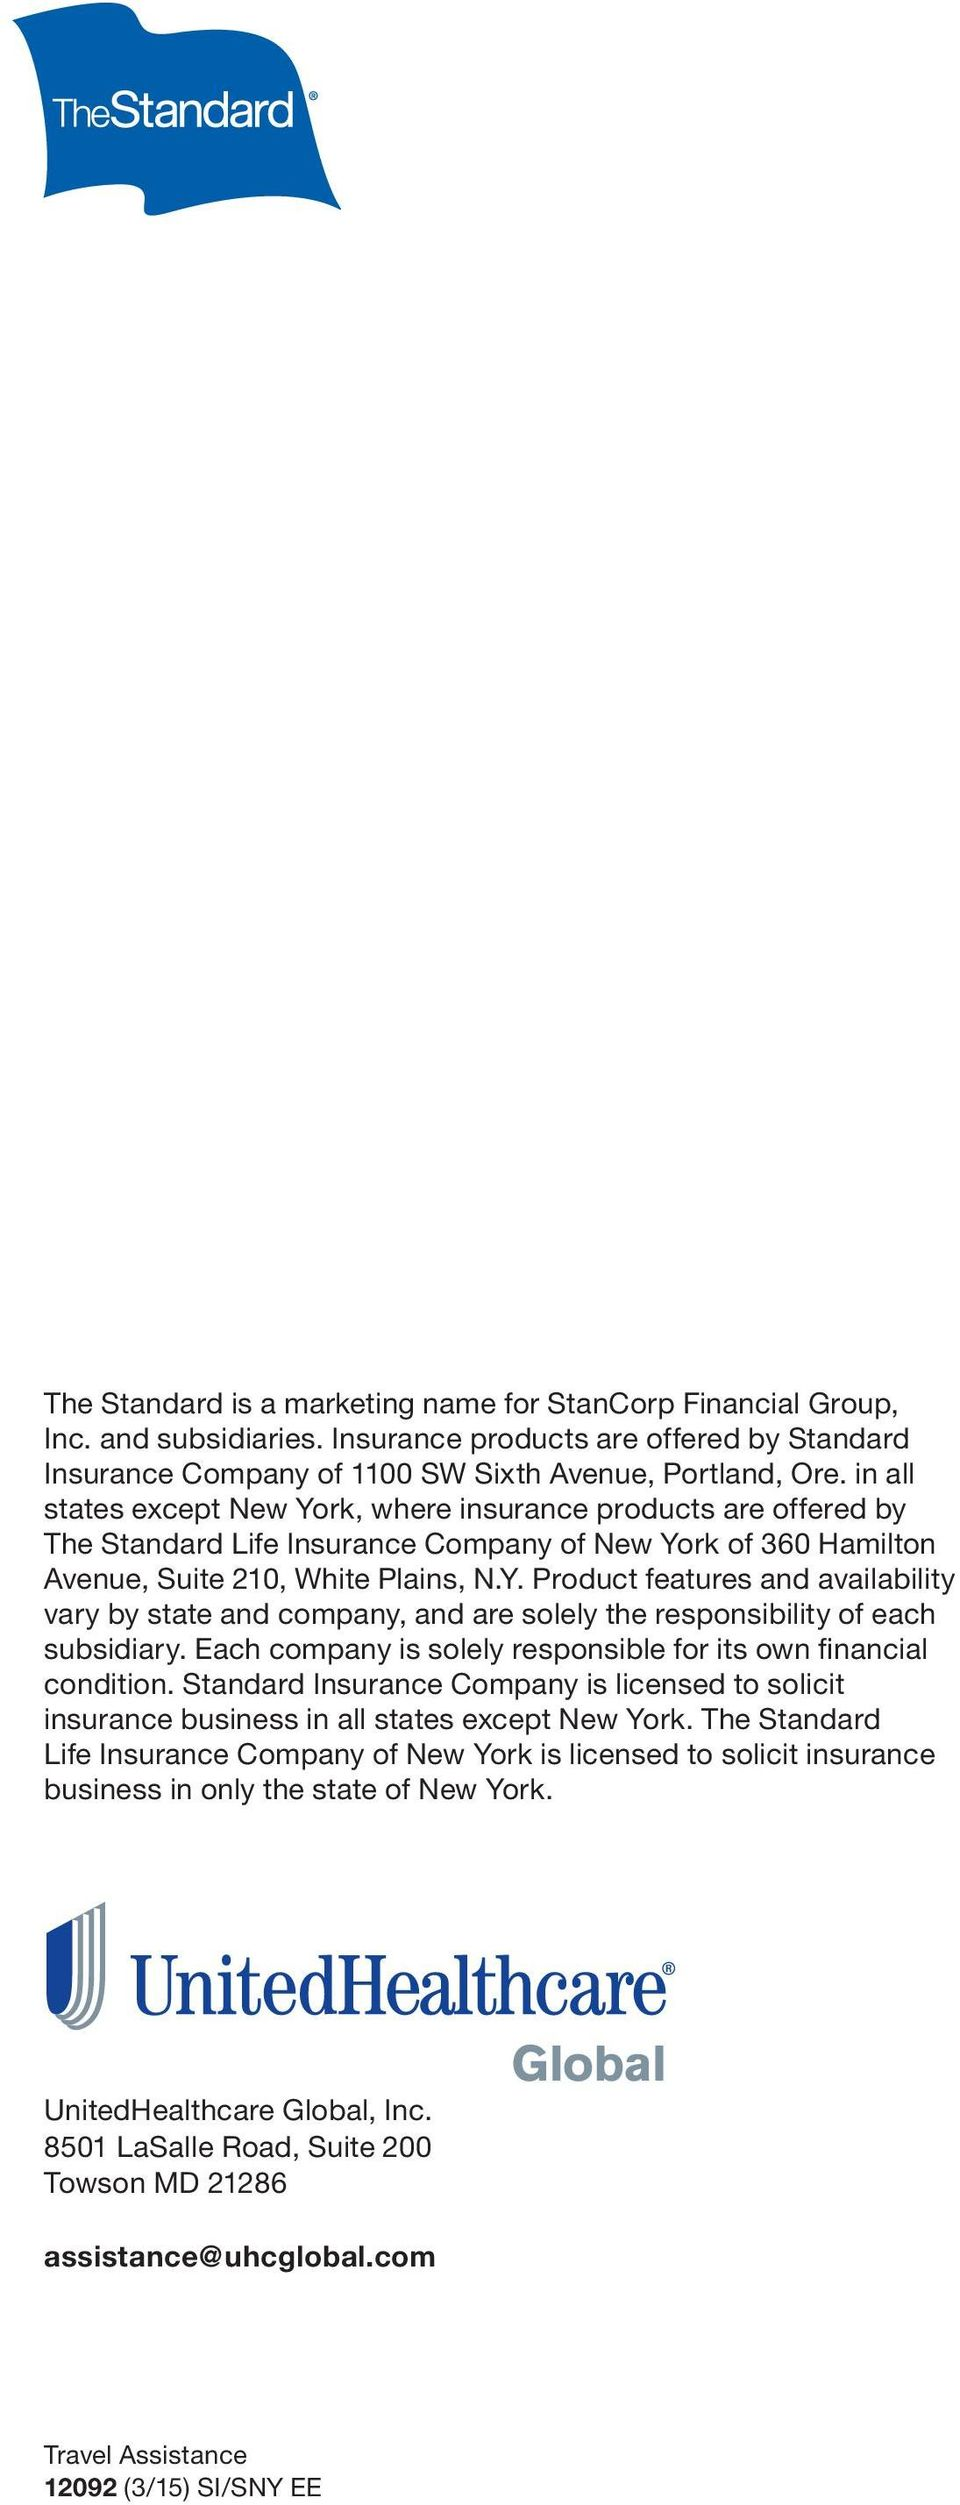 Each company is solely responsible for its own financial condition. Standard Insurance Company is licensed to solicit insurance business in all states except New York.